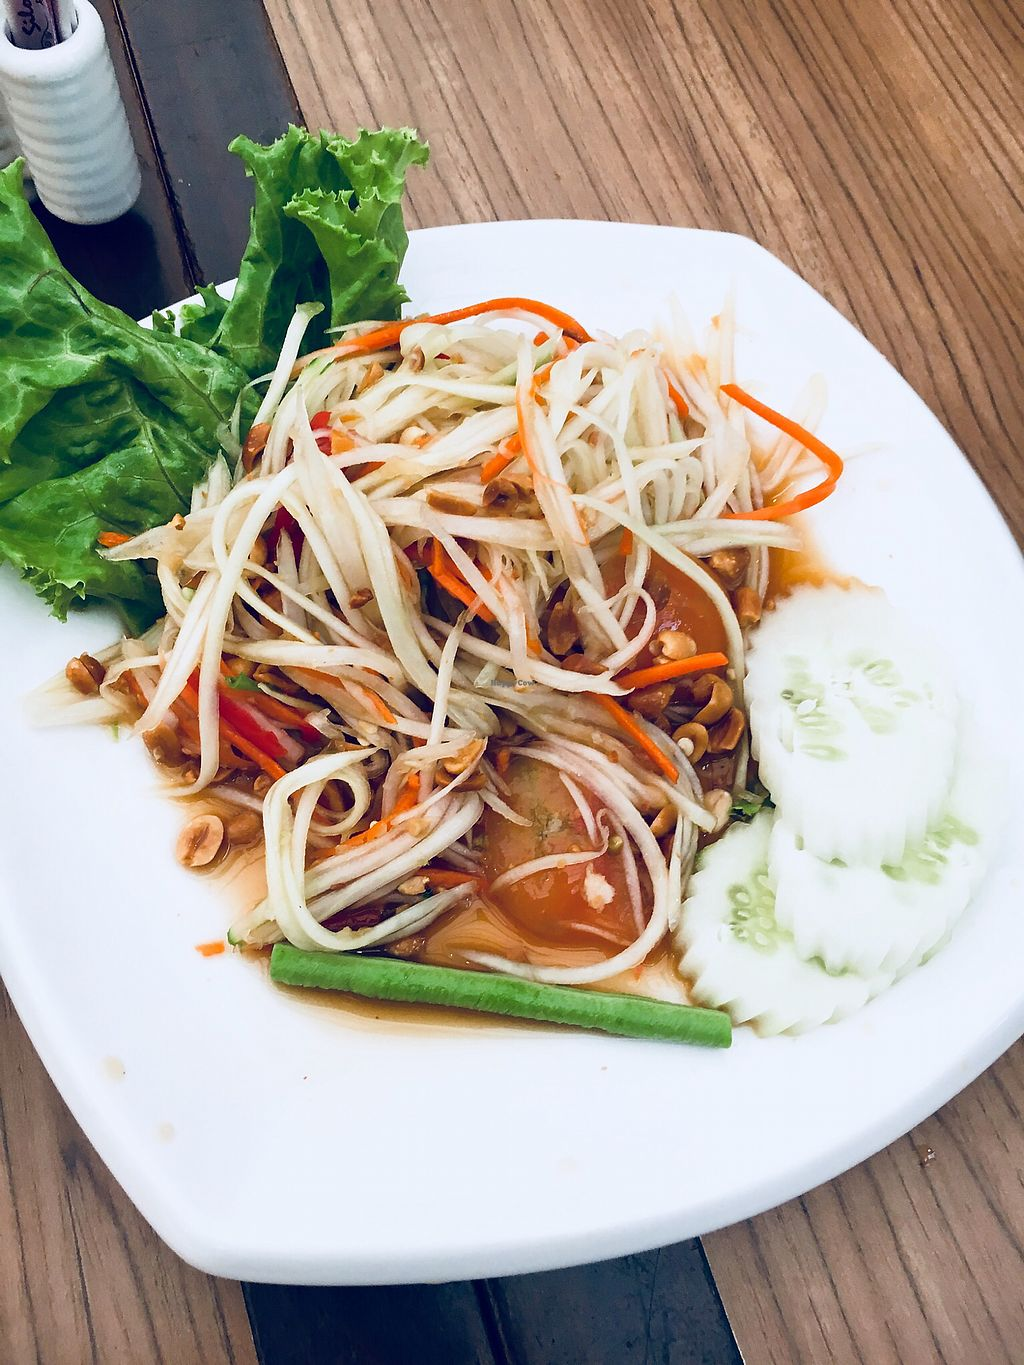 "Photo of Silom Village Restaurant - Airport  by <a href=""/members/profile/Pips"">Pips</a> <br/>Papaya salad <br/> March 11, 2018  - <a href='/contact/abuse/image/102736/369182'>Report</a>"